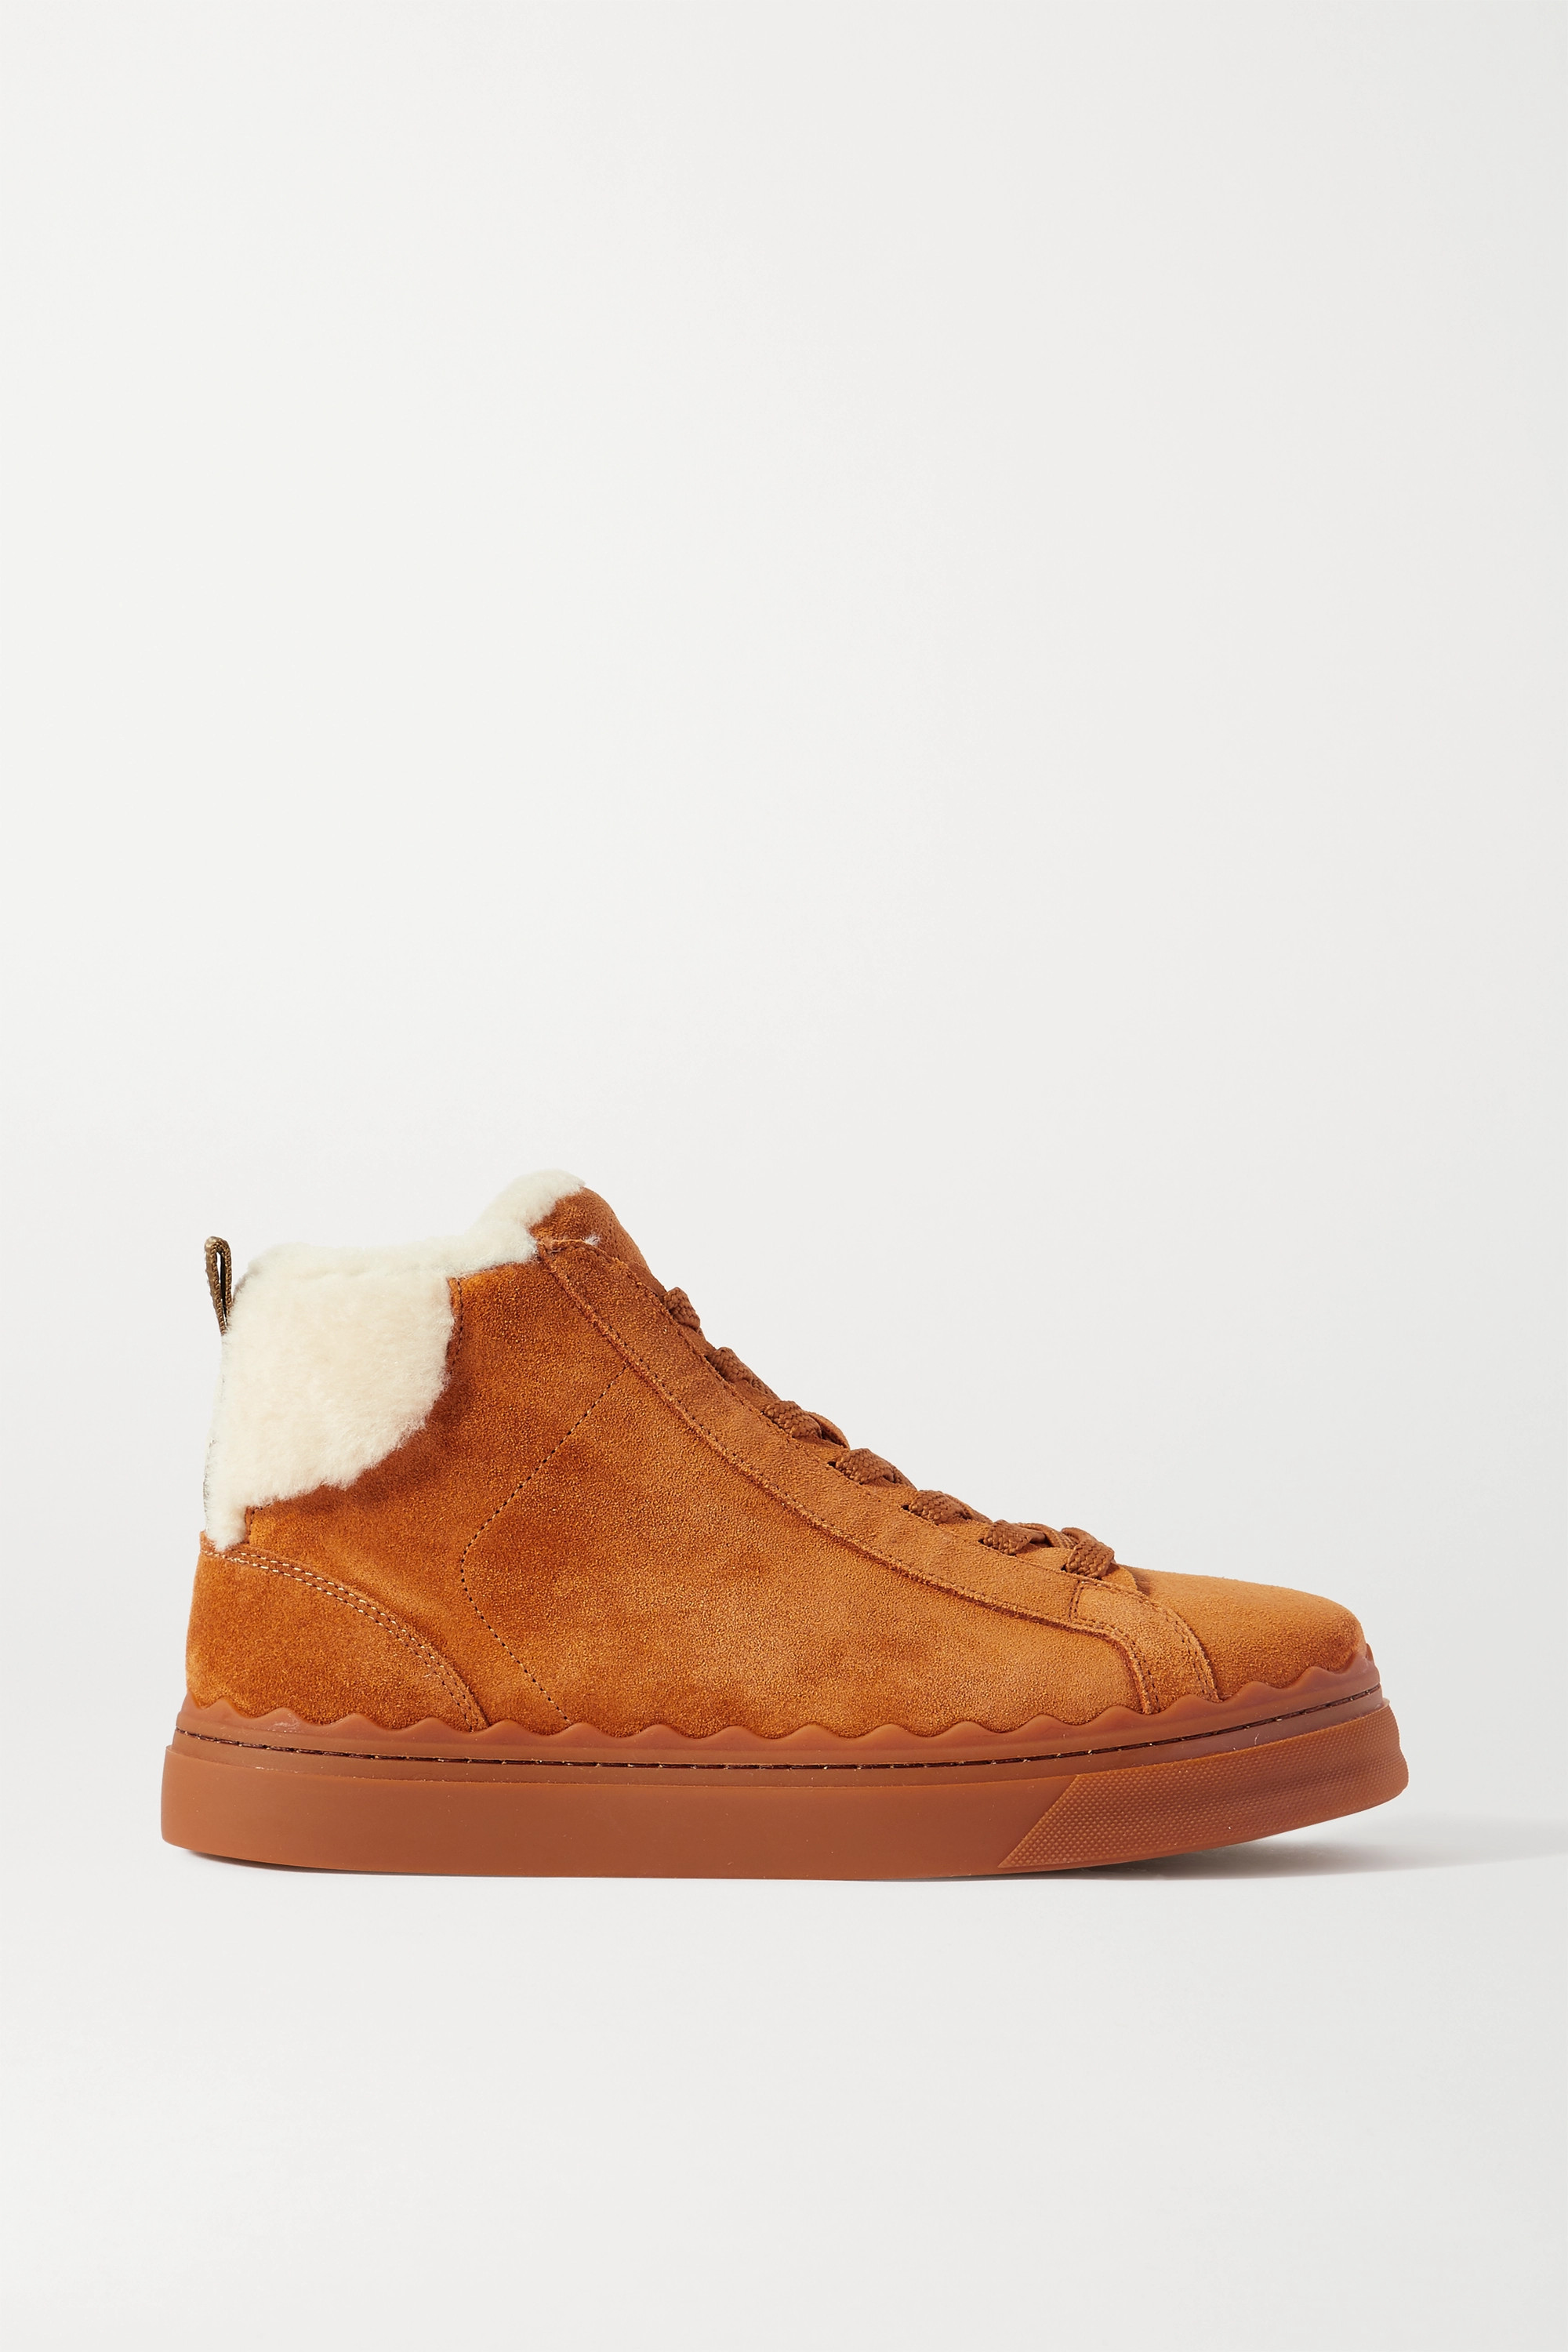 Chloé Lauren shearling-lined scalloped suede high-top sneakers